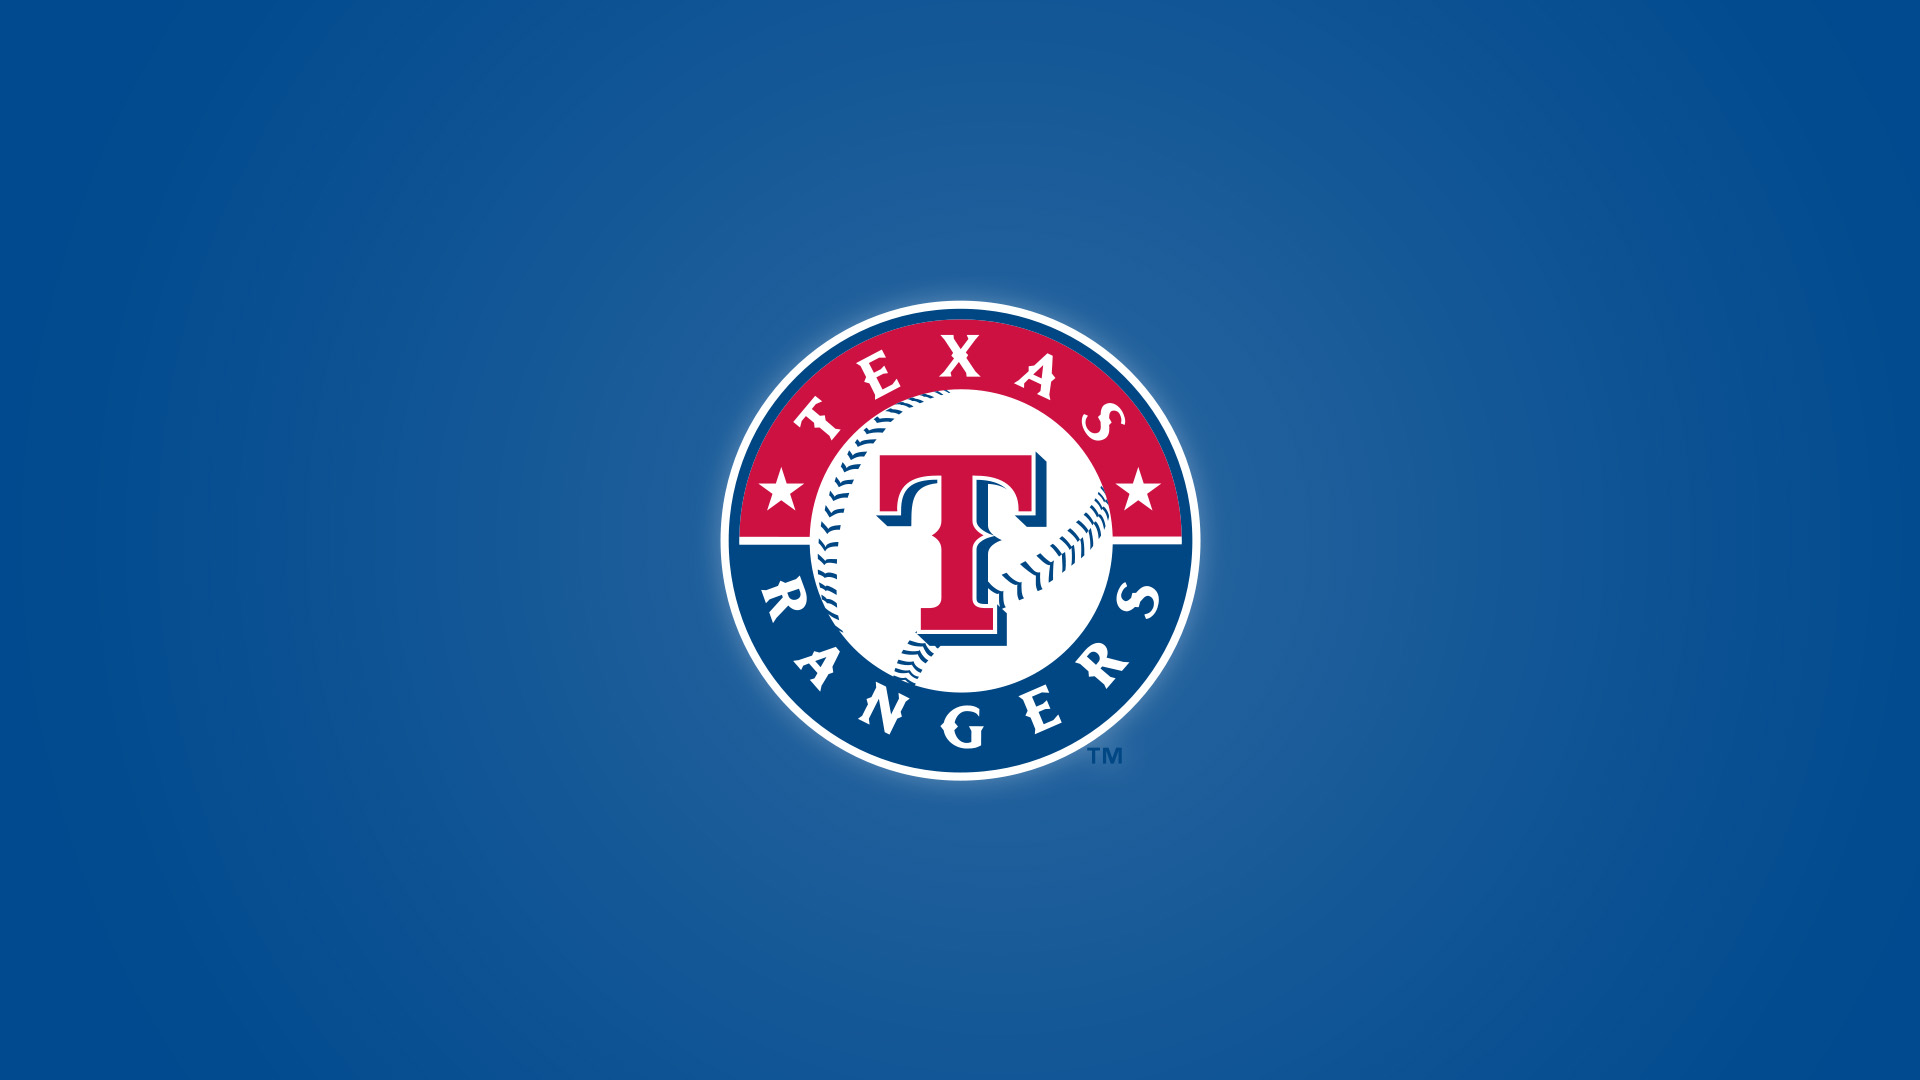 Wallpaper Texas Rangers Logo HD Wallpaper 1080p Upload at April 1 1920x1080